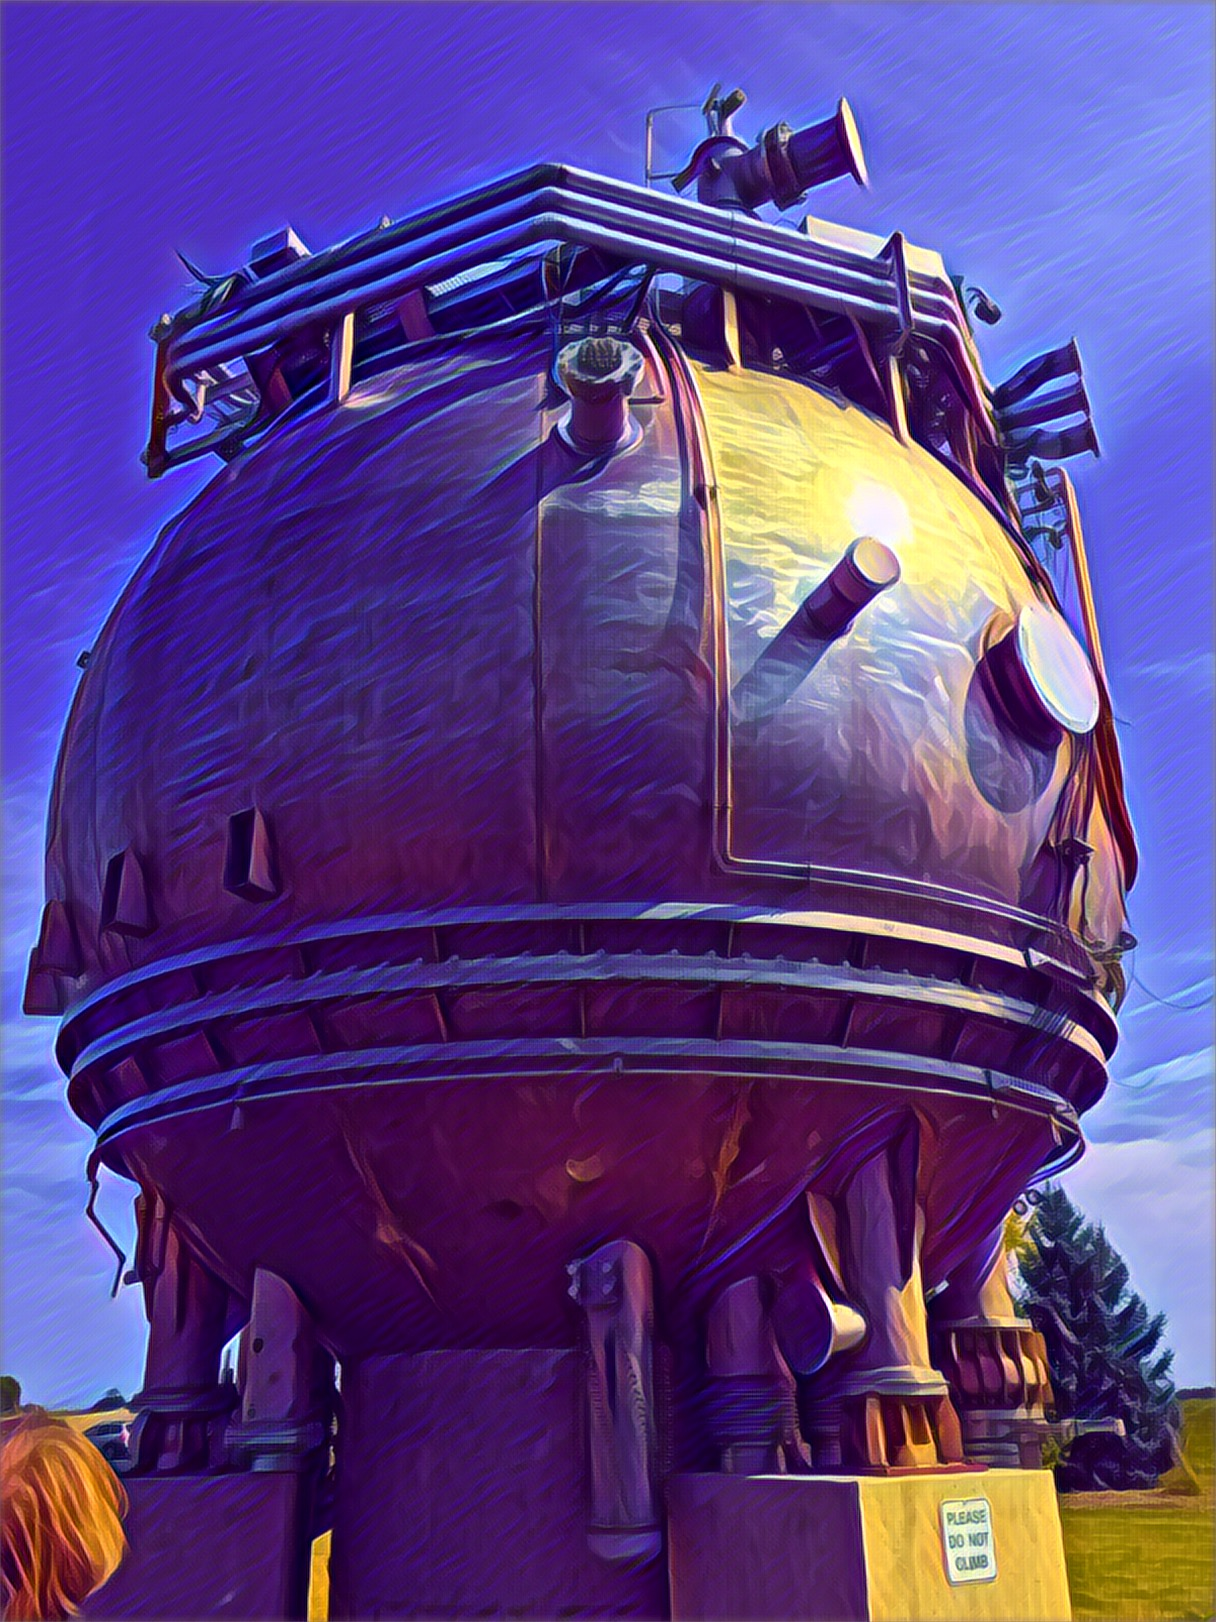 Fermlab's first particle detector. Photo by Gary Ricke, September 2017. iPhone 6s. Rendered with Prisma app